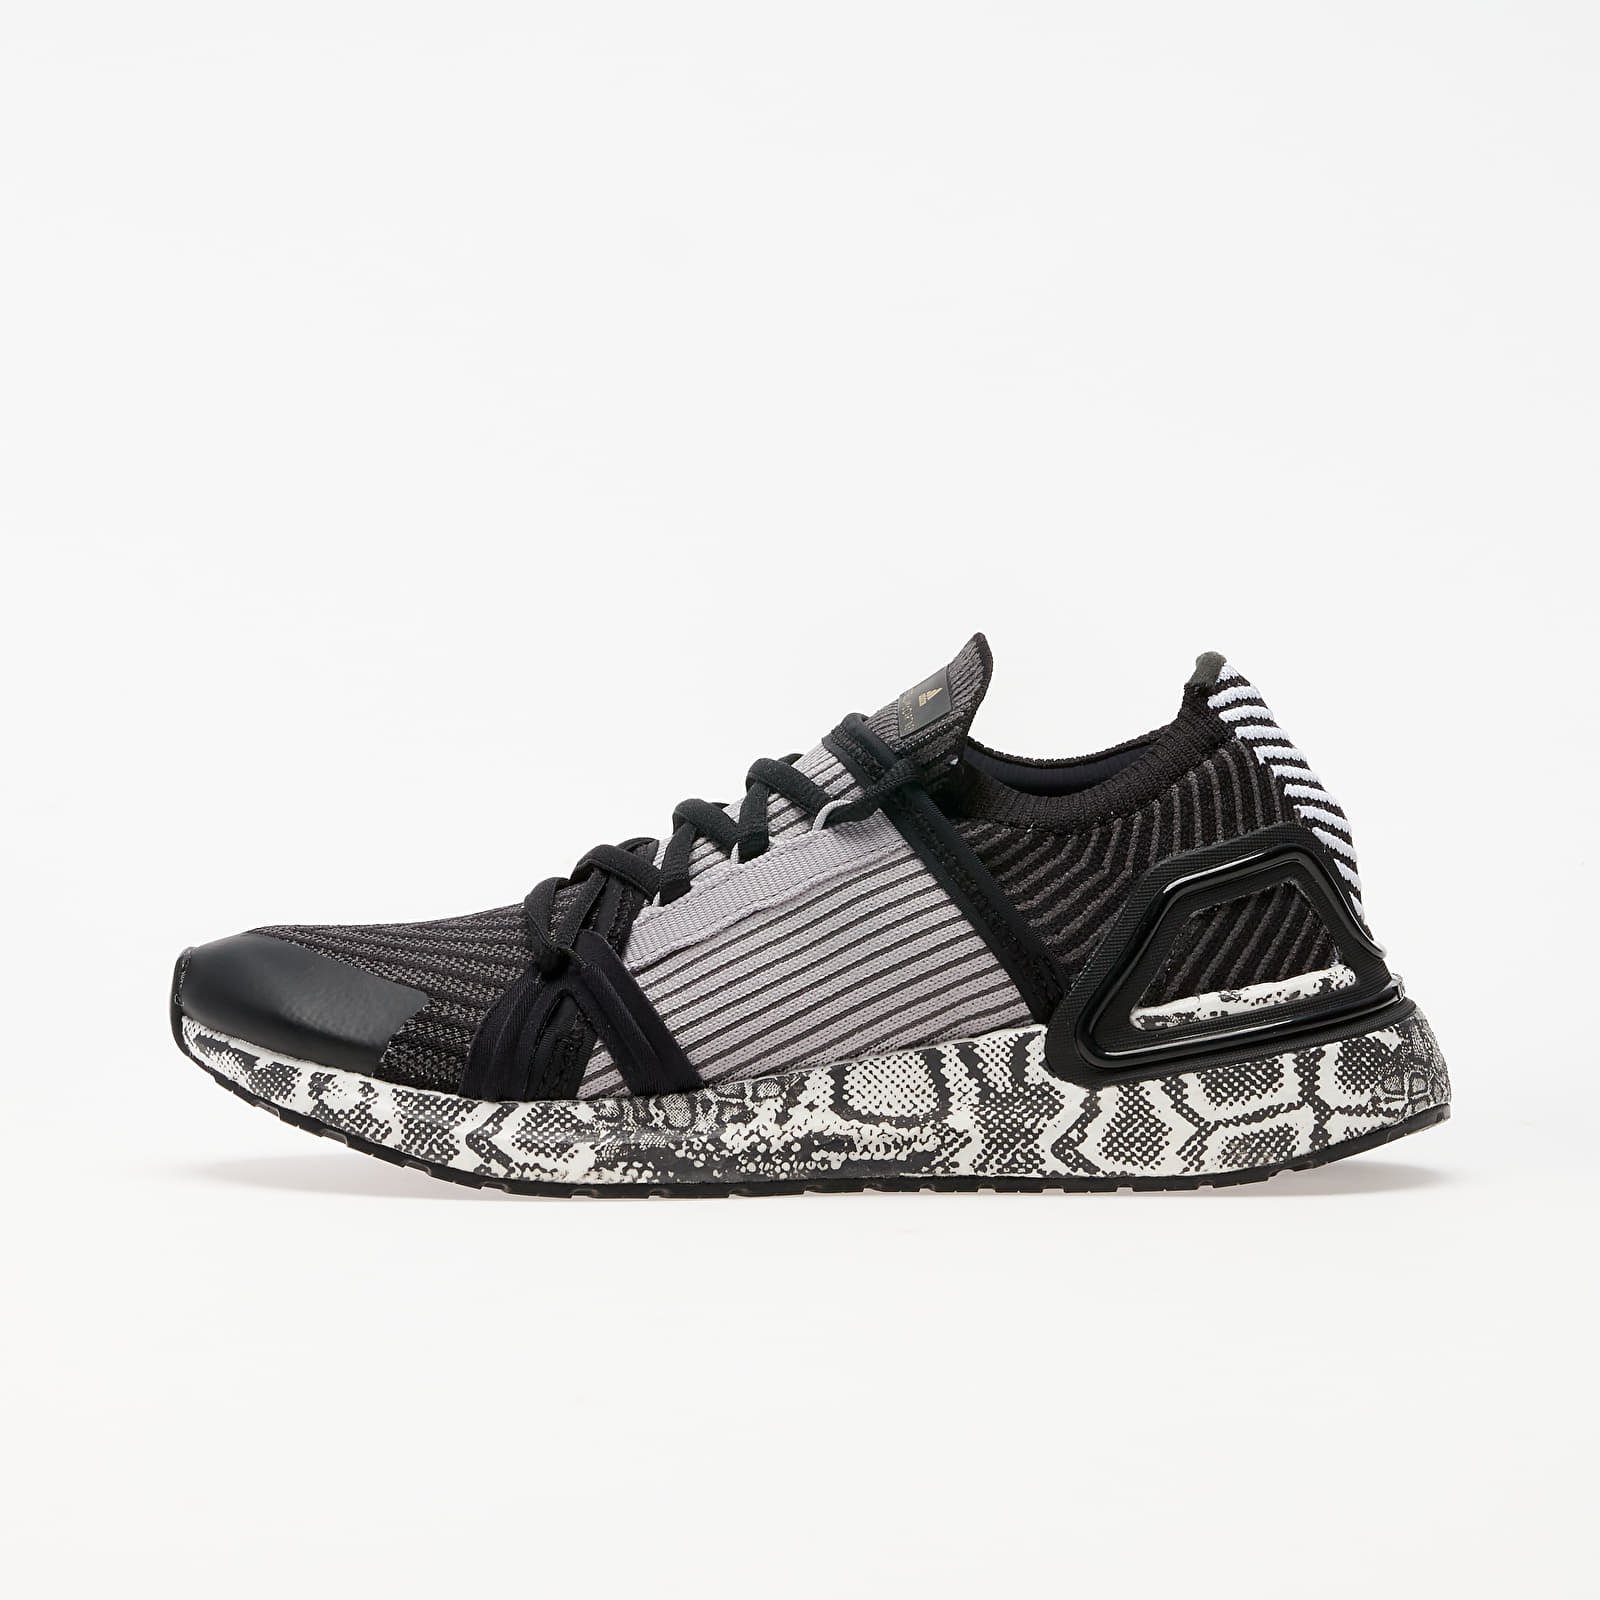 Frauen adidas x Stella McCartney UltraBOOST 20 Black White/ Black White/ Dg Solid Grey